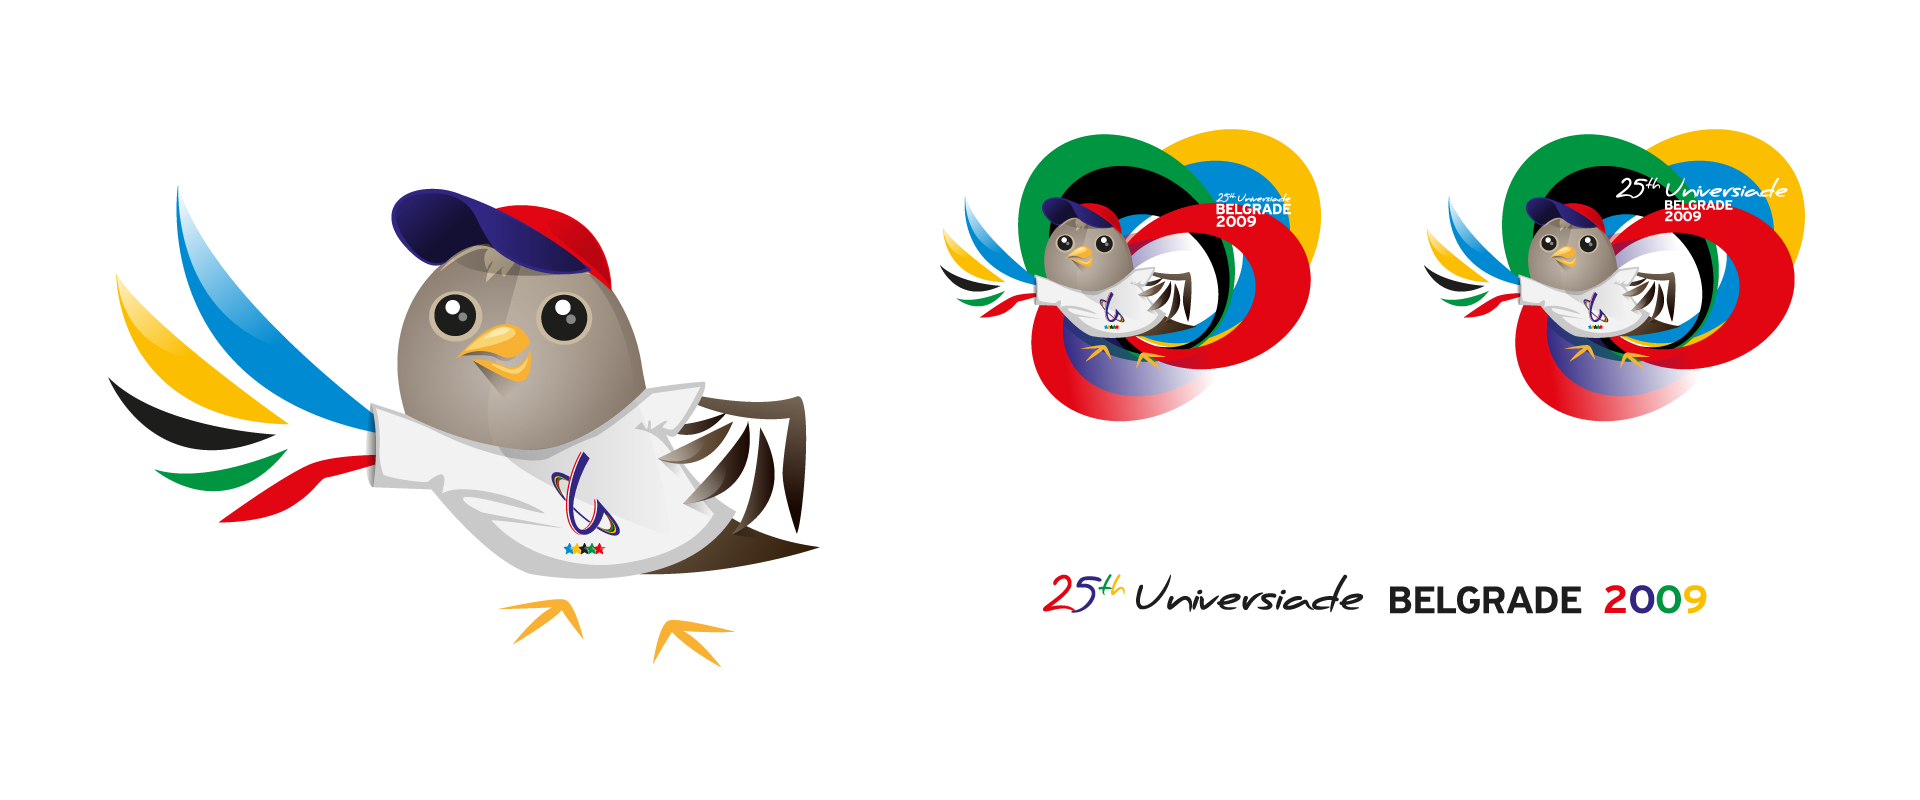 Universiade Belgrade 2009 mascot